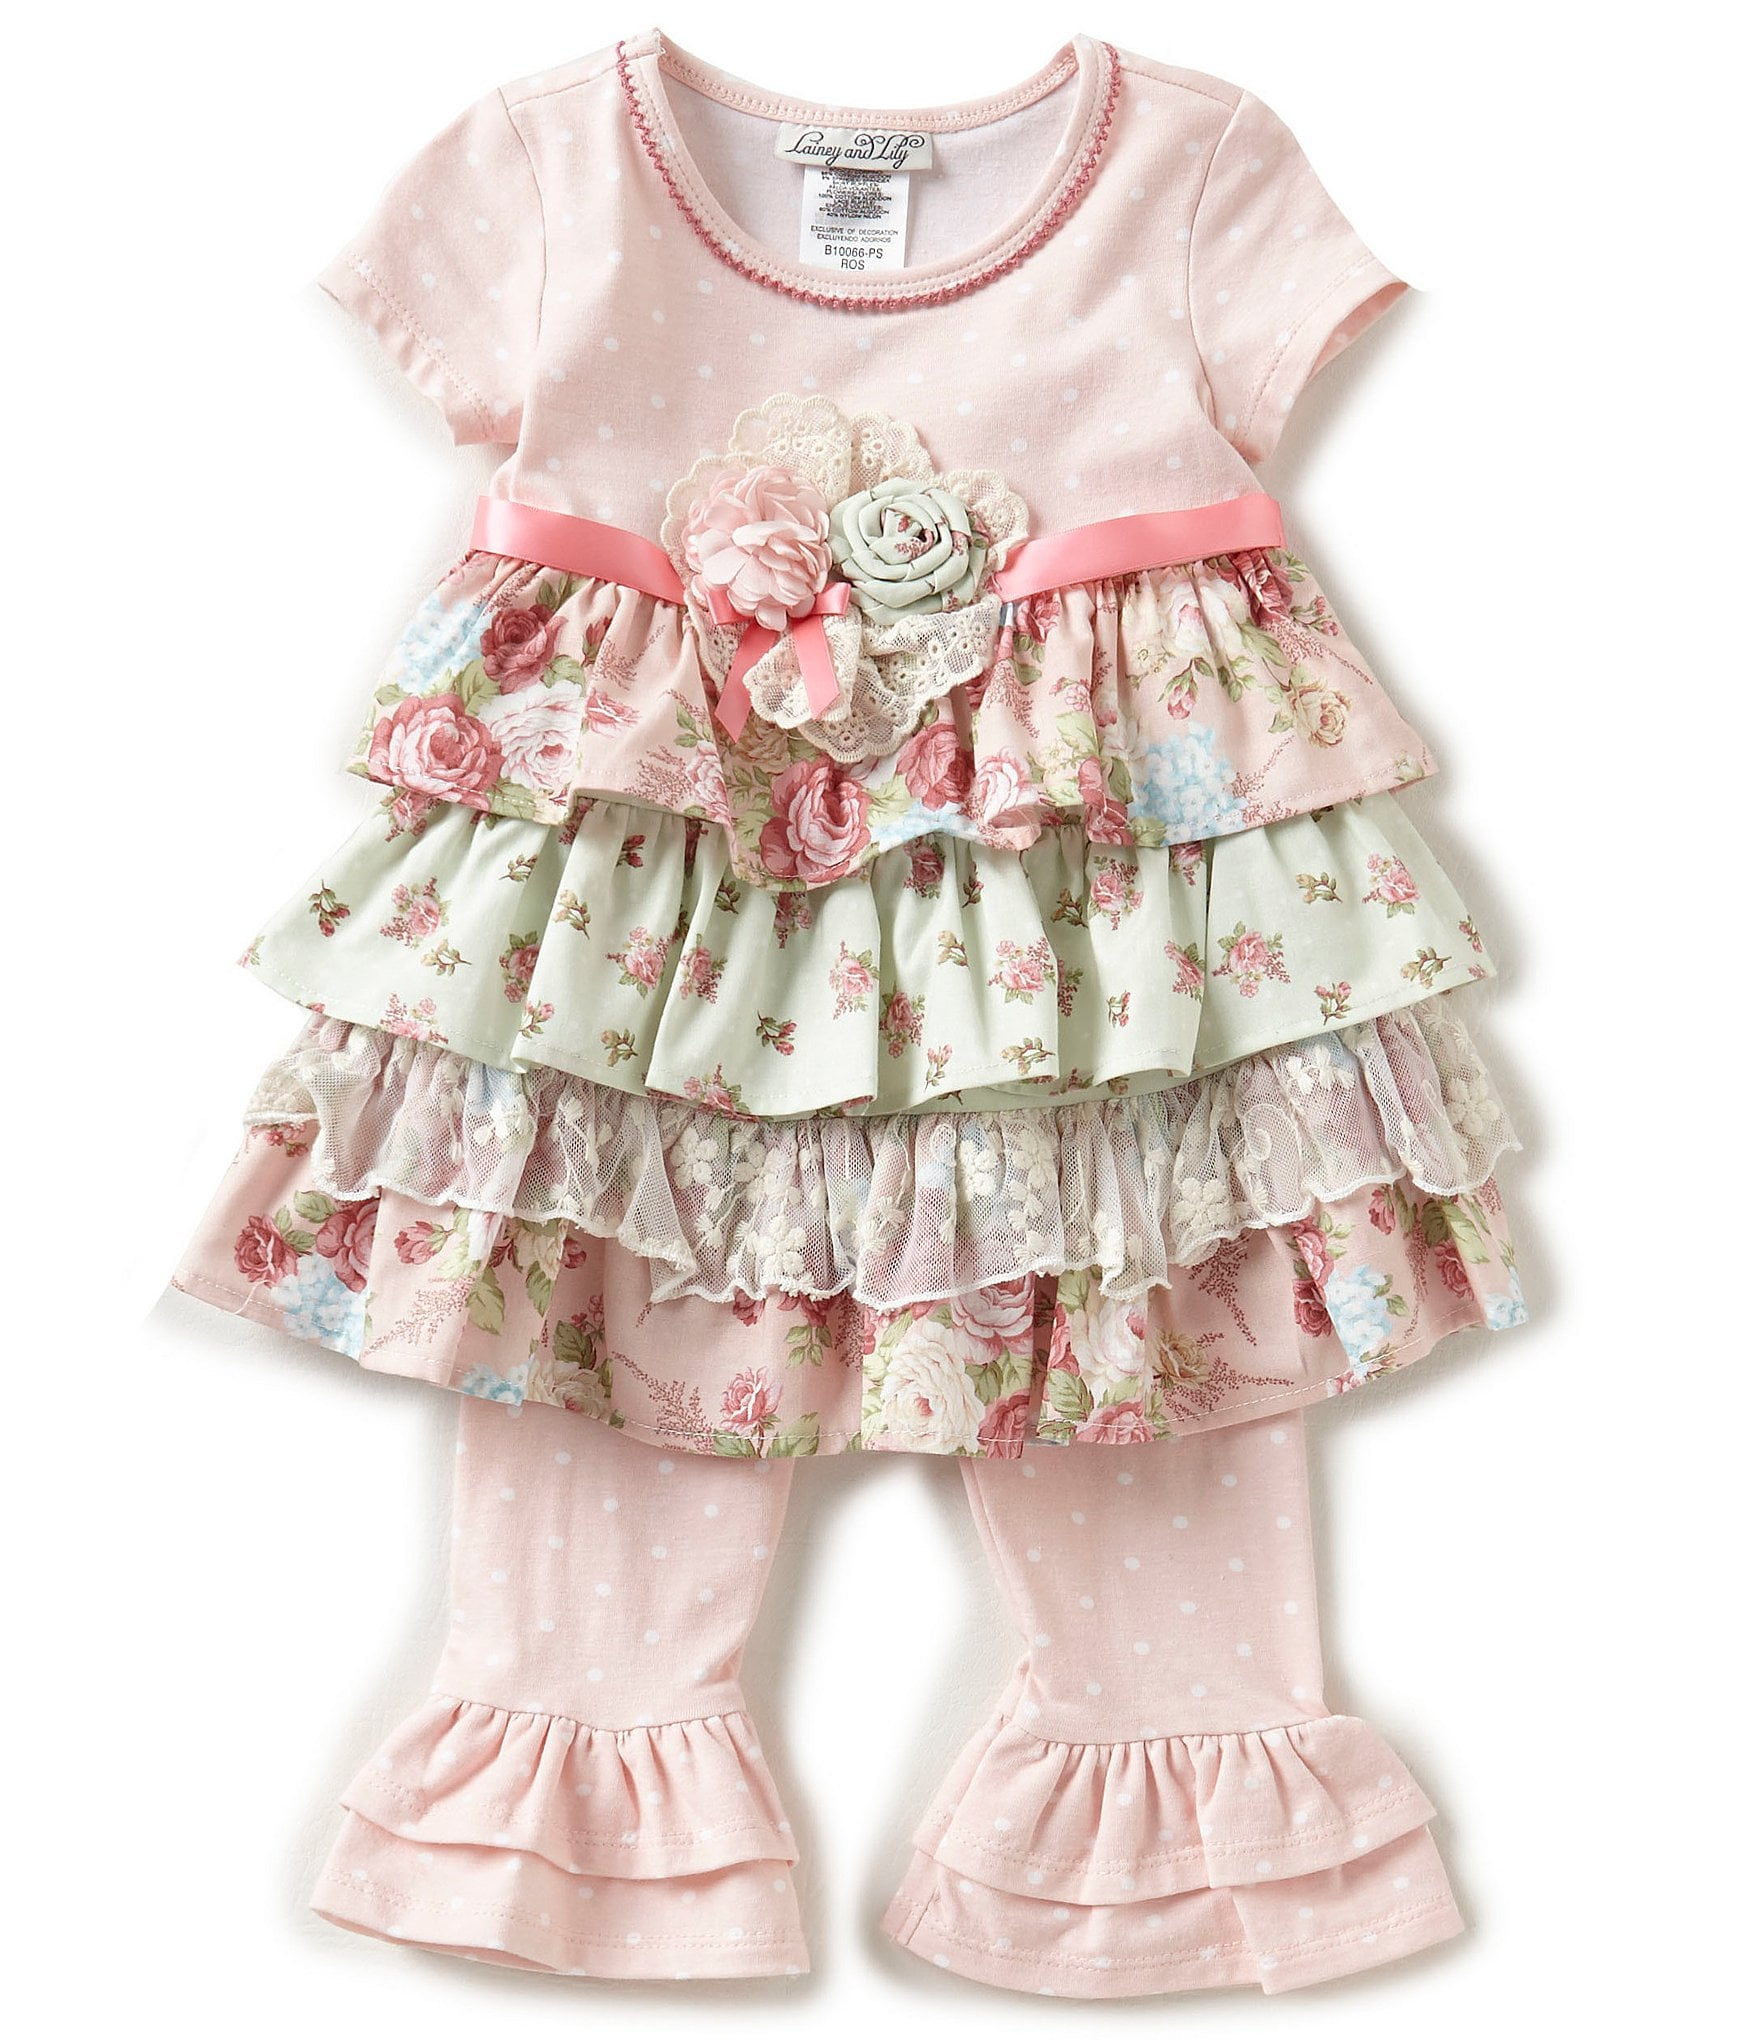 Lainey & Lily Baby Girls Newborn 24 Months Mixed Media Fit